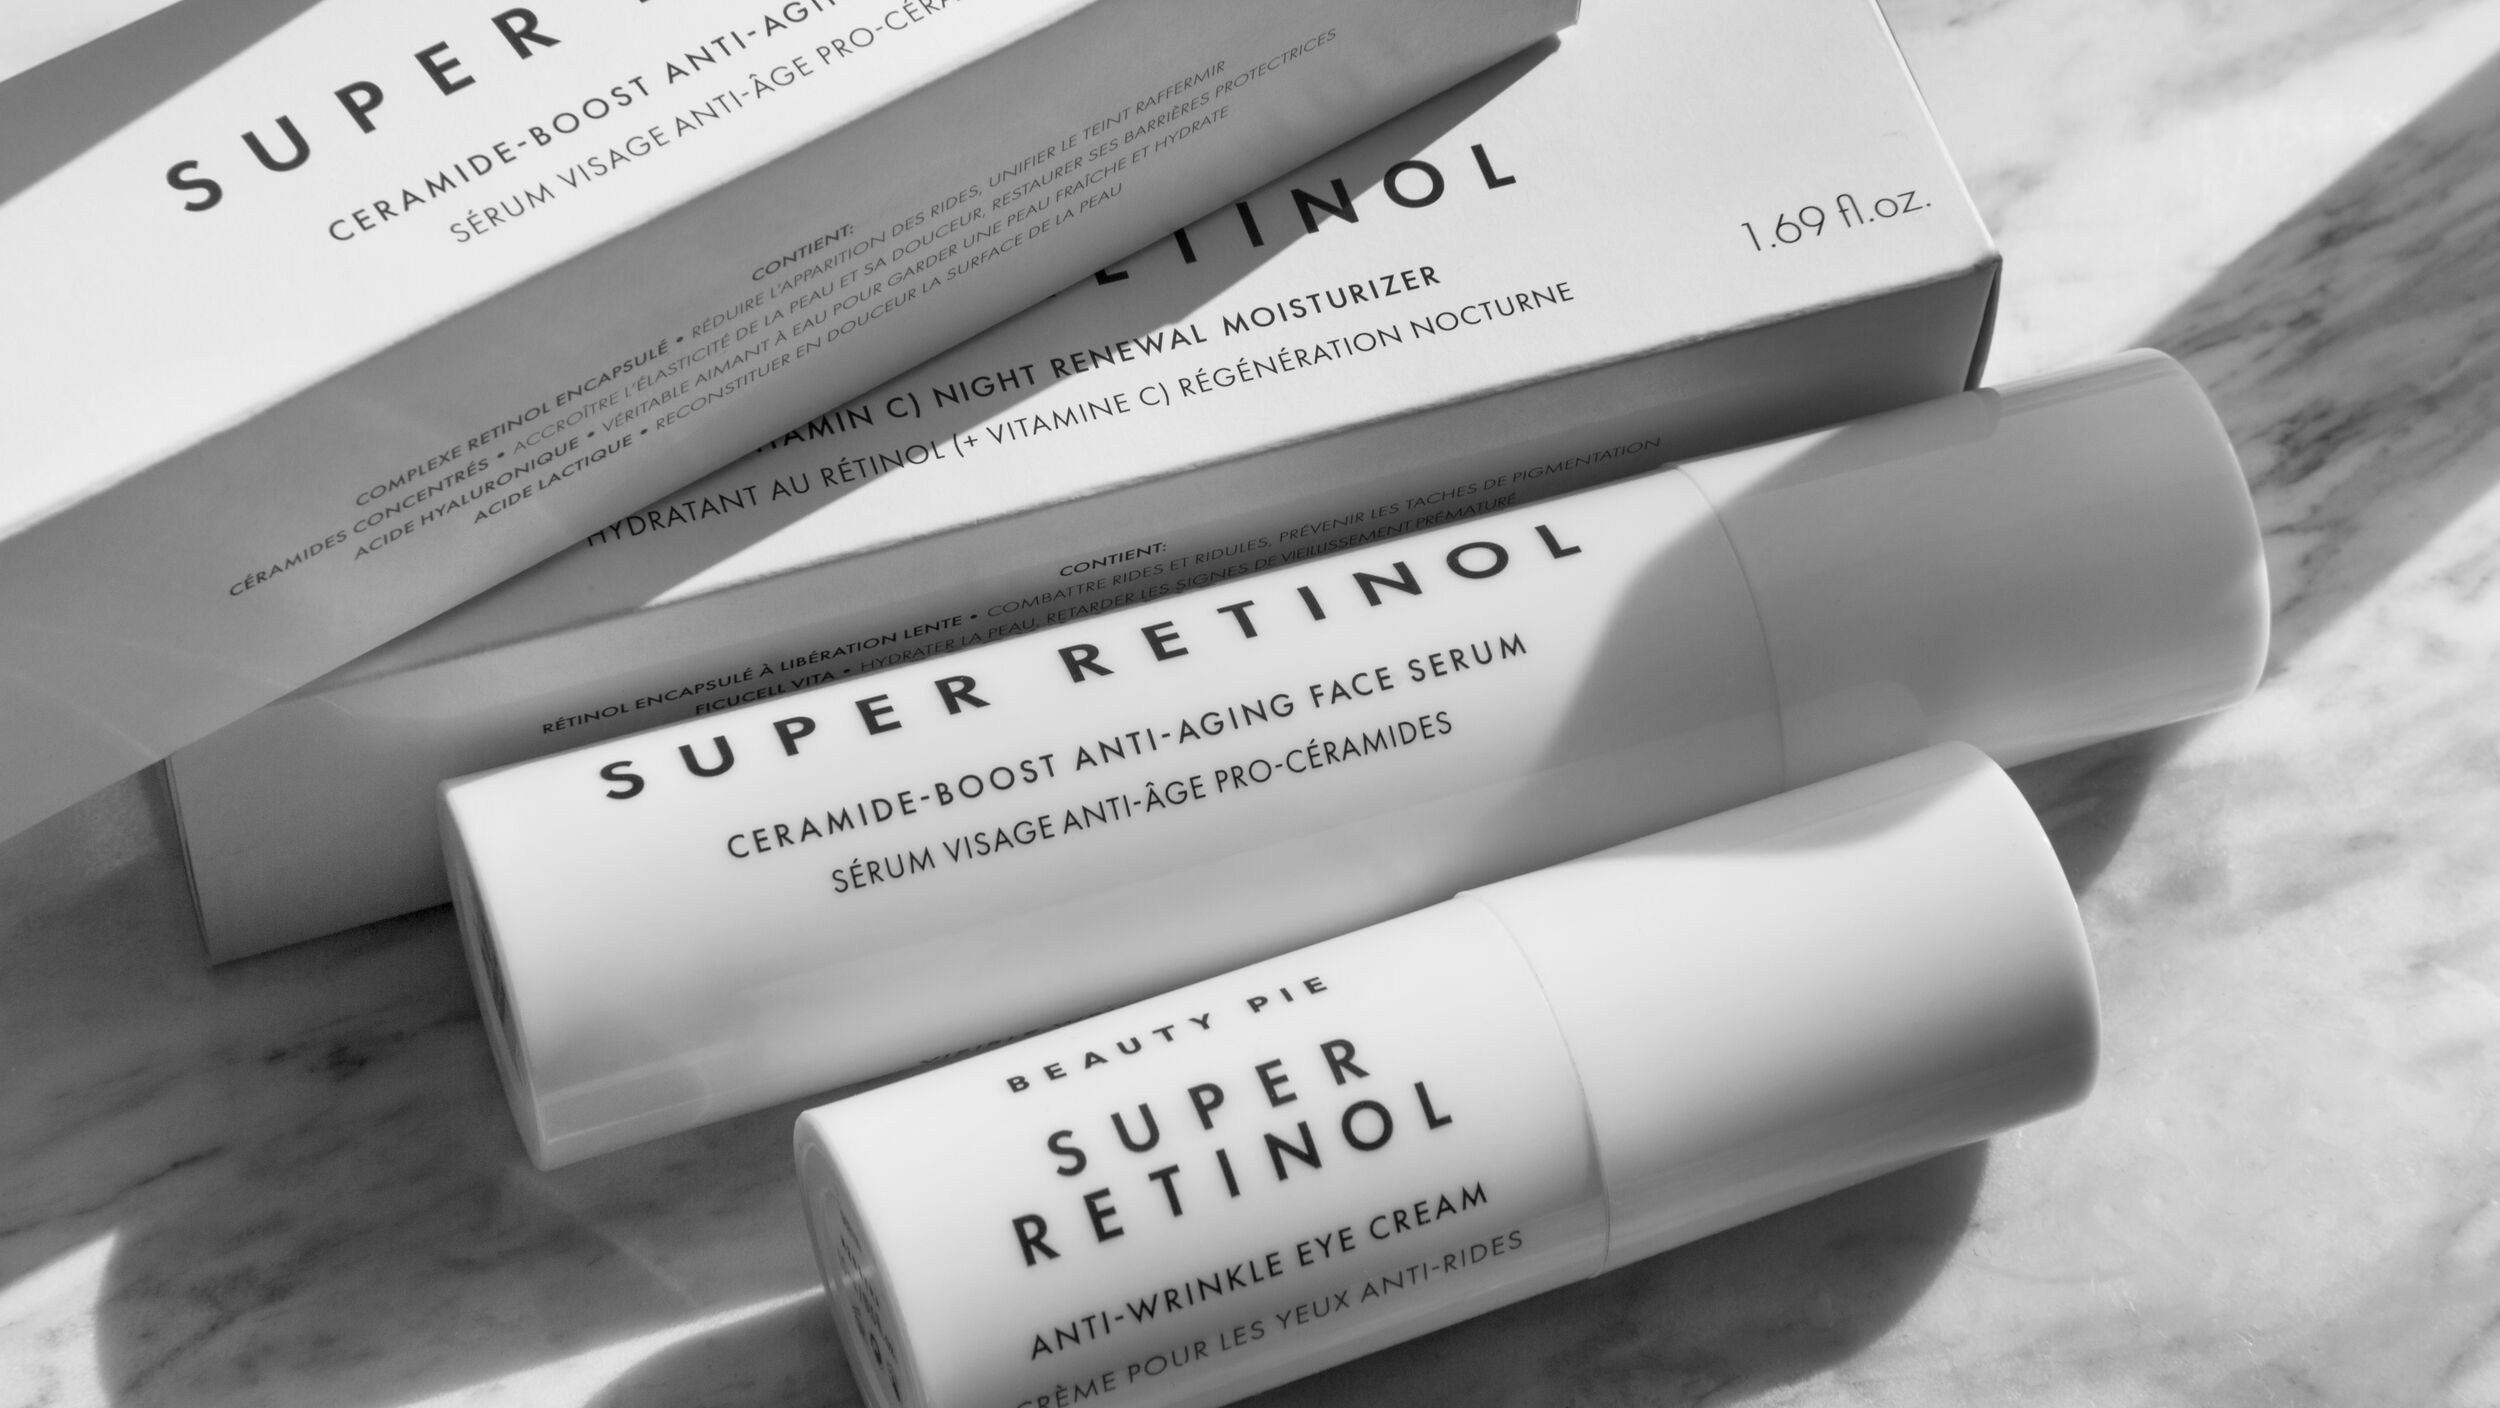 BEAUTY PIE Super Retinol